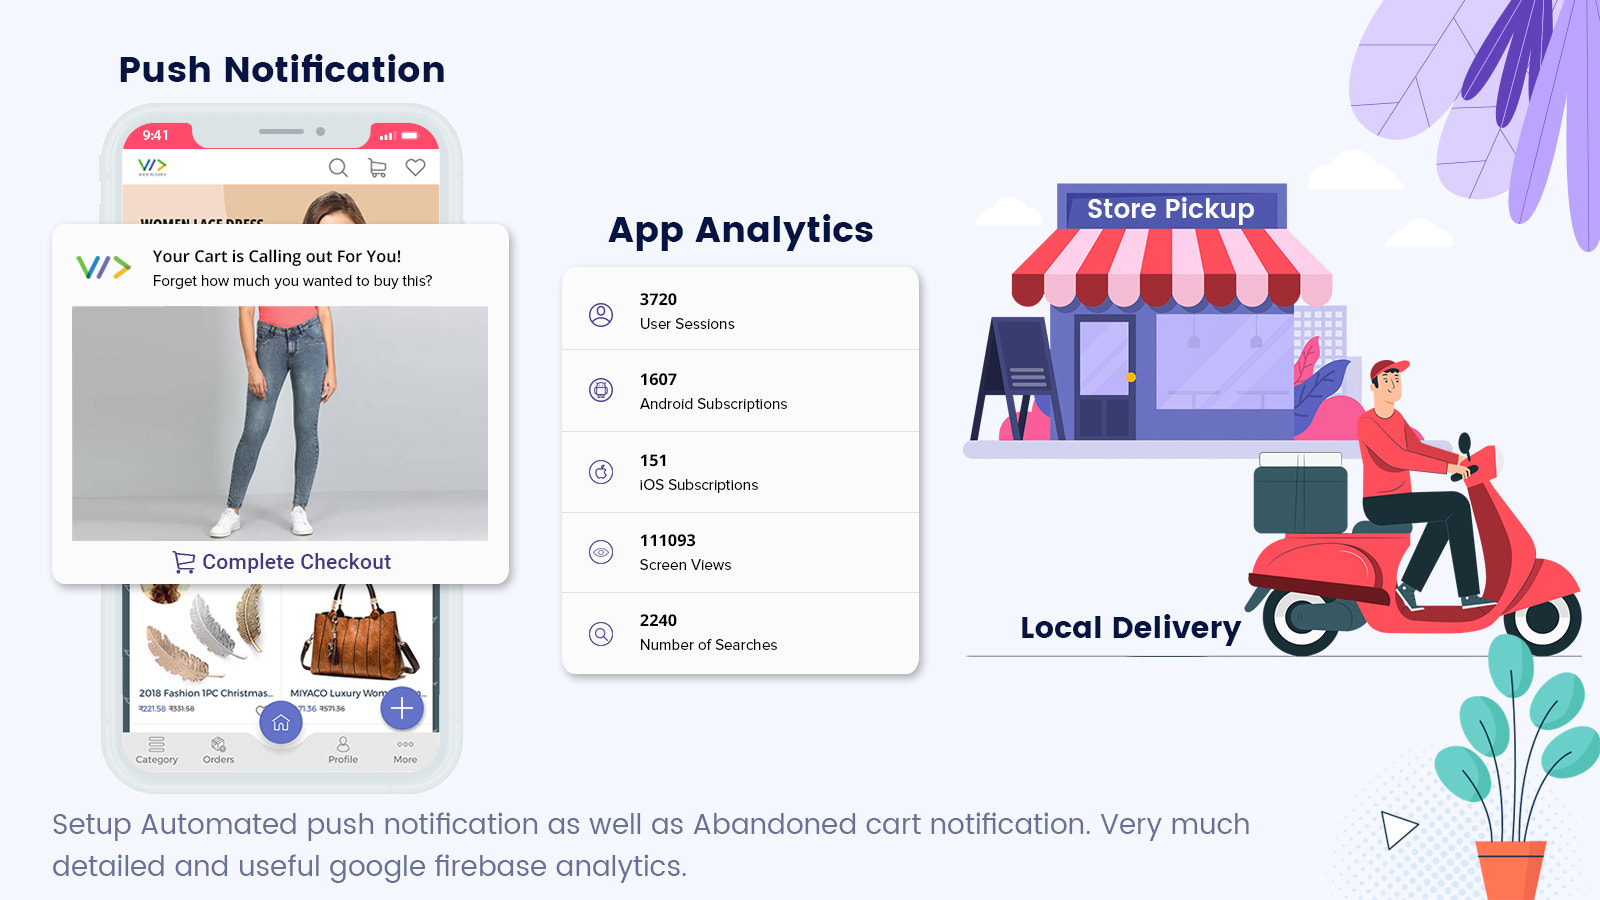 Push Notification ,App Analytics, Local Delivery & Store Pickup